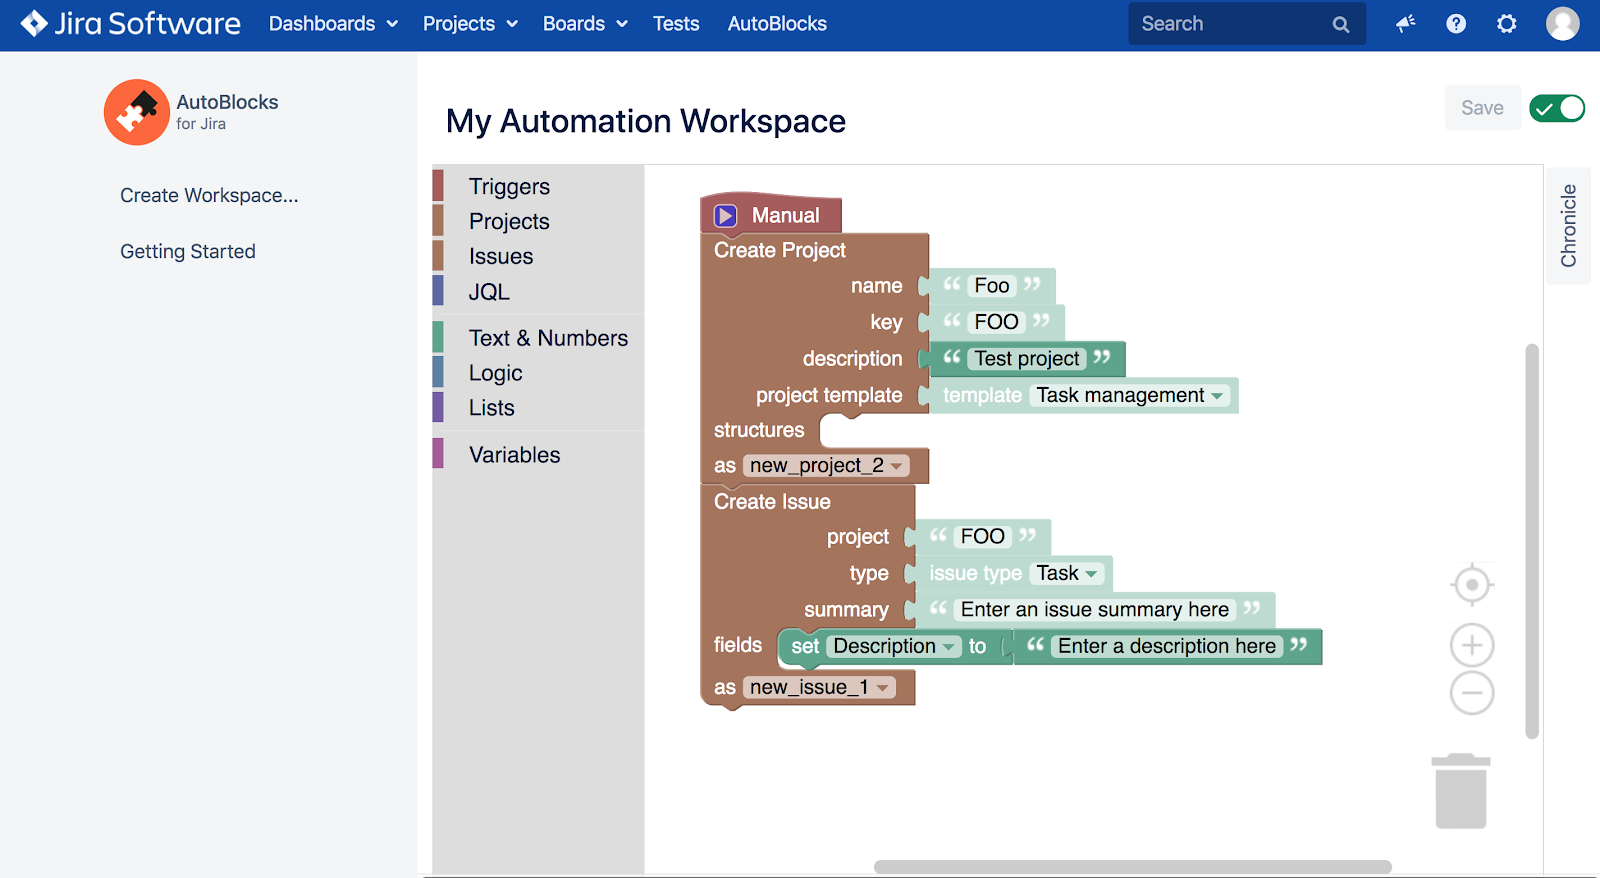 Introducing AutoBlocks for Jira